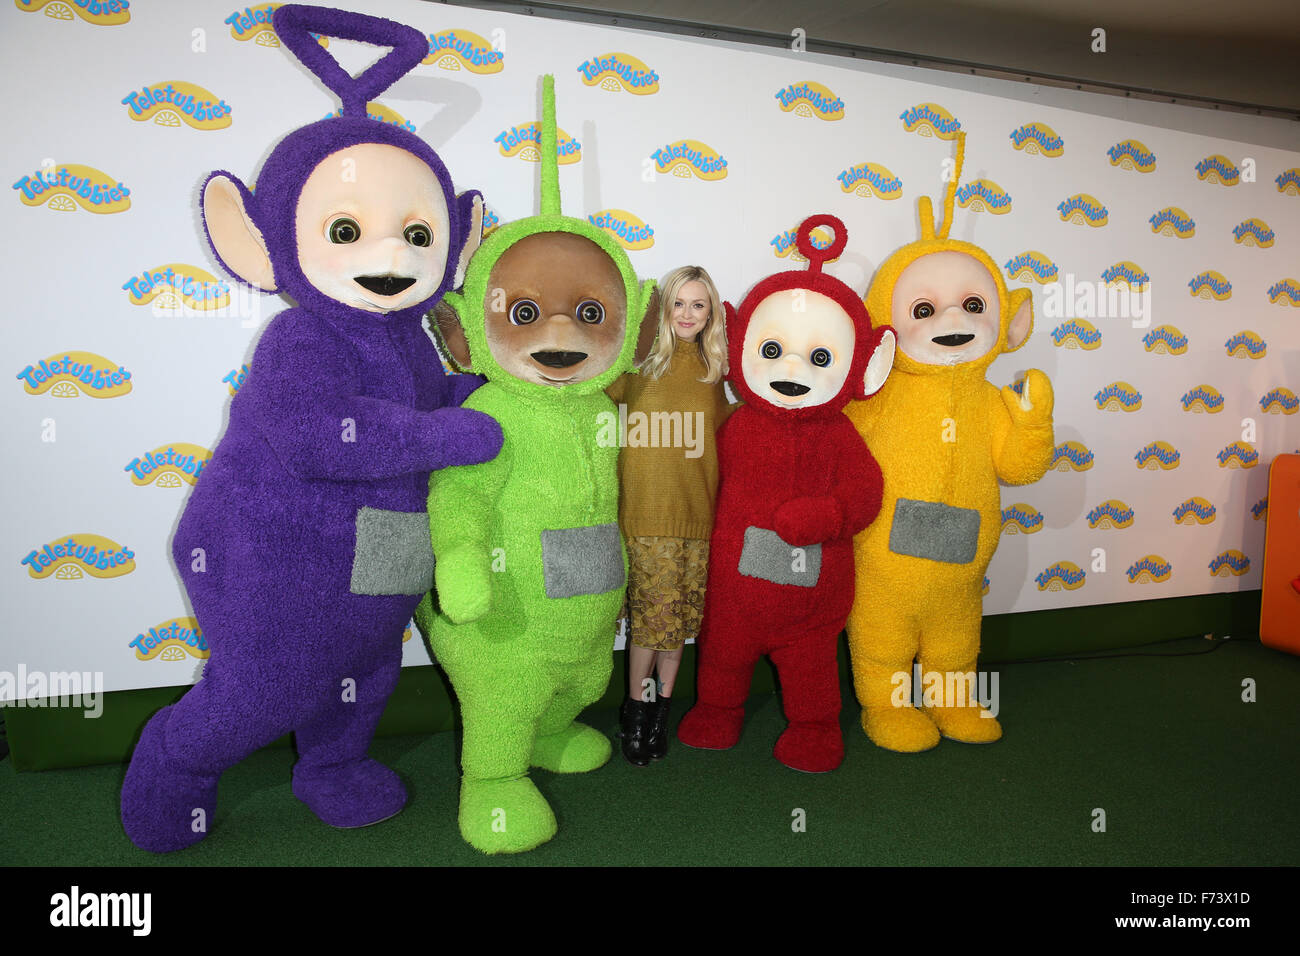 World Premiere Of Teletubbies Tv Series For Cbeebies Held